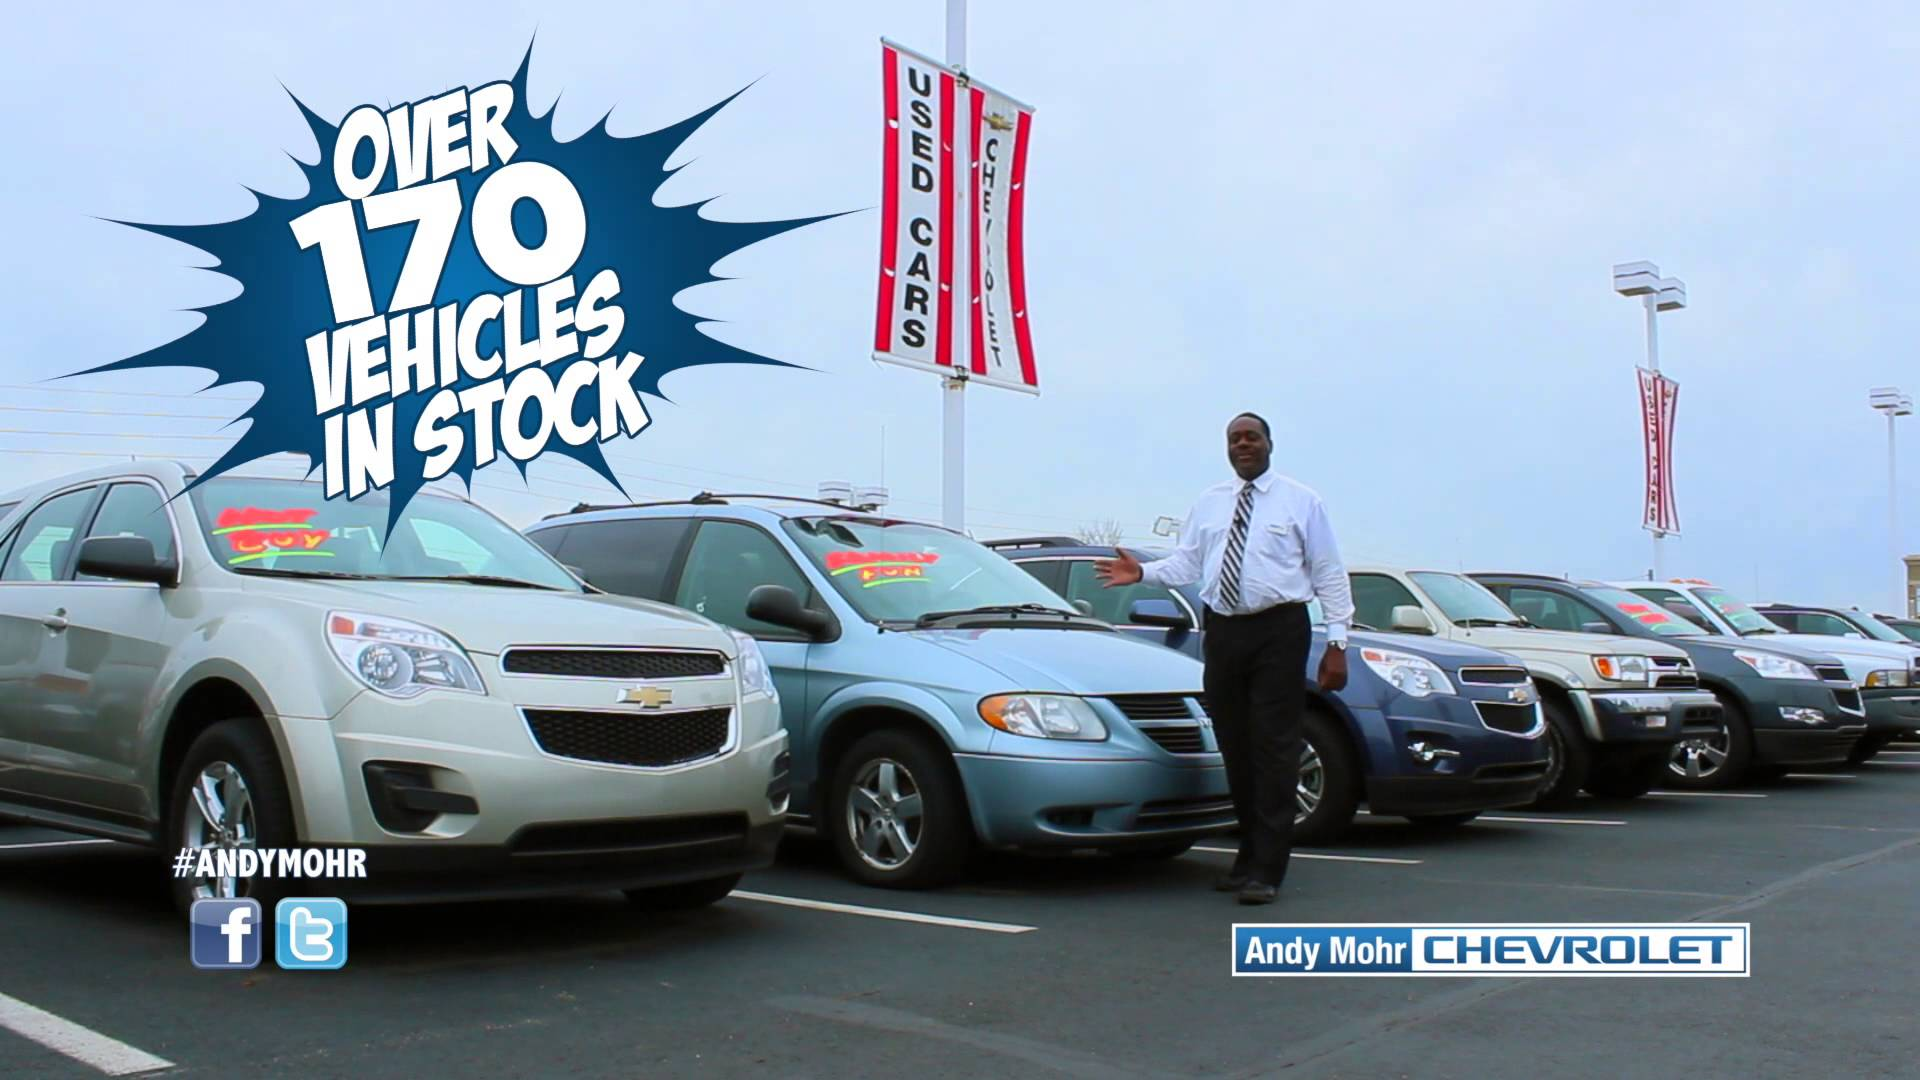 used car sale certified preowned vehicles andy mohr chevrolet indianapolis indiana